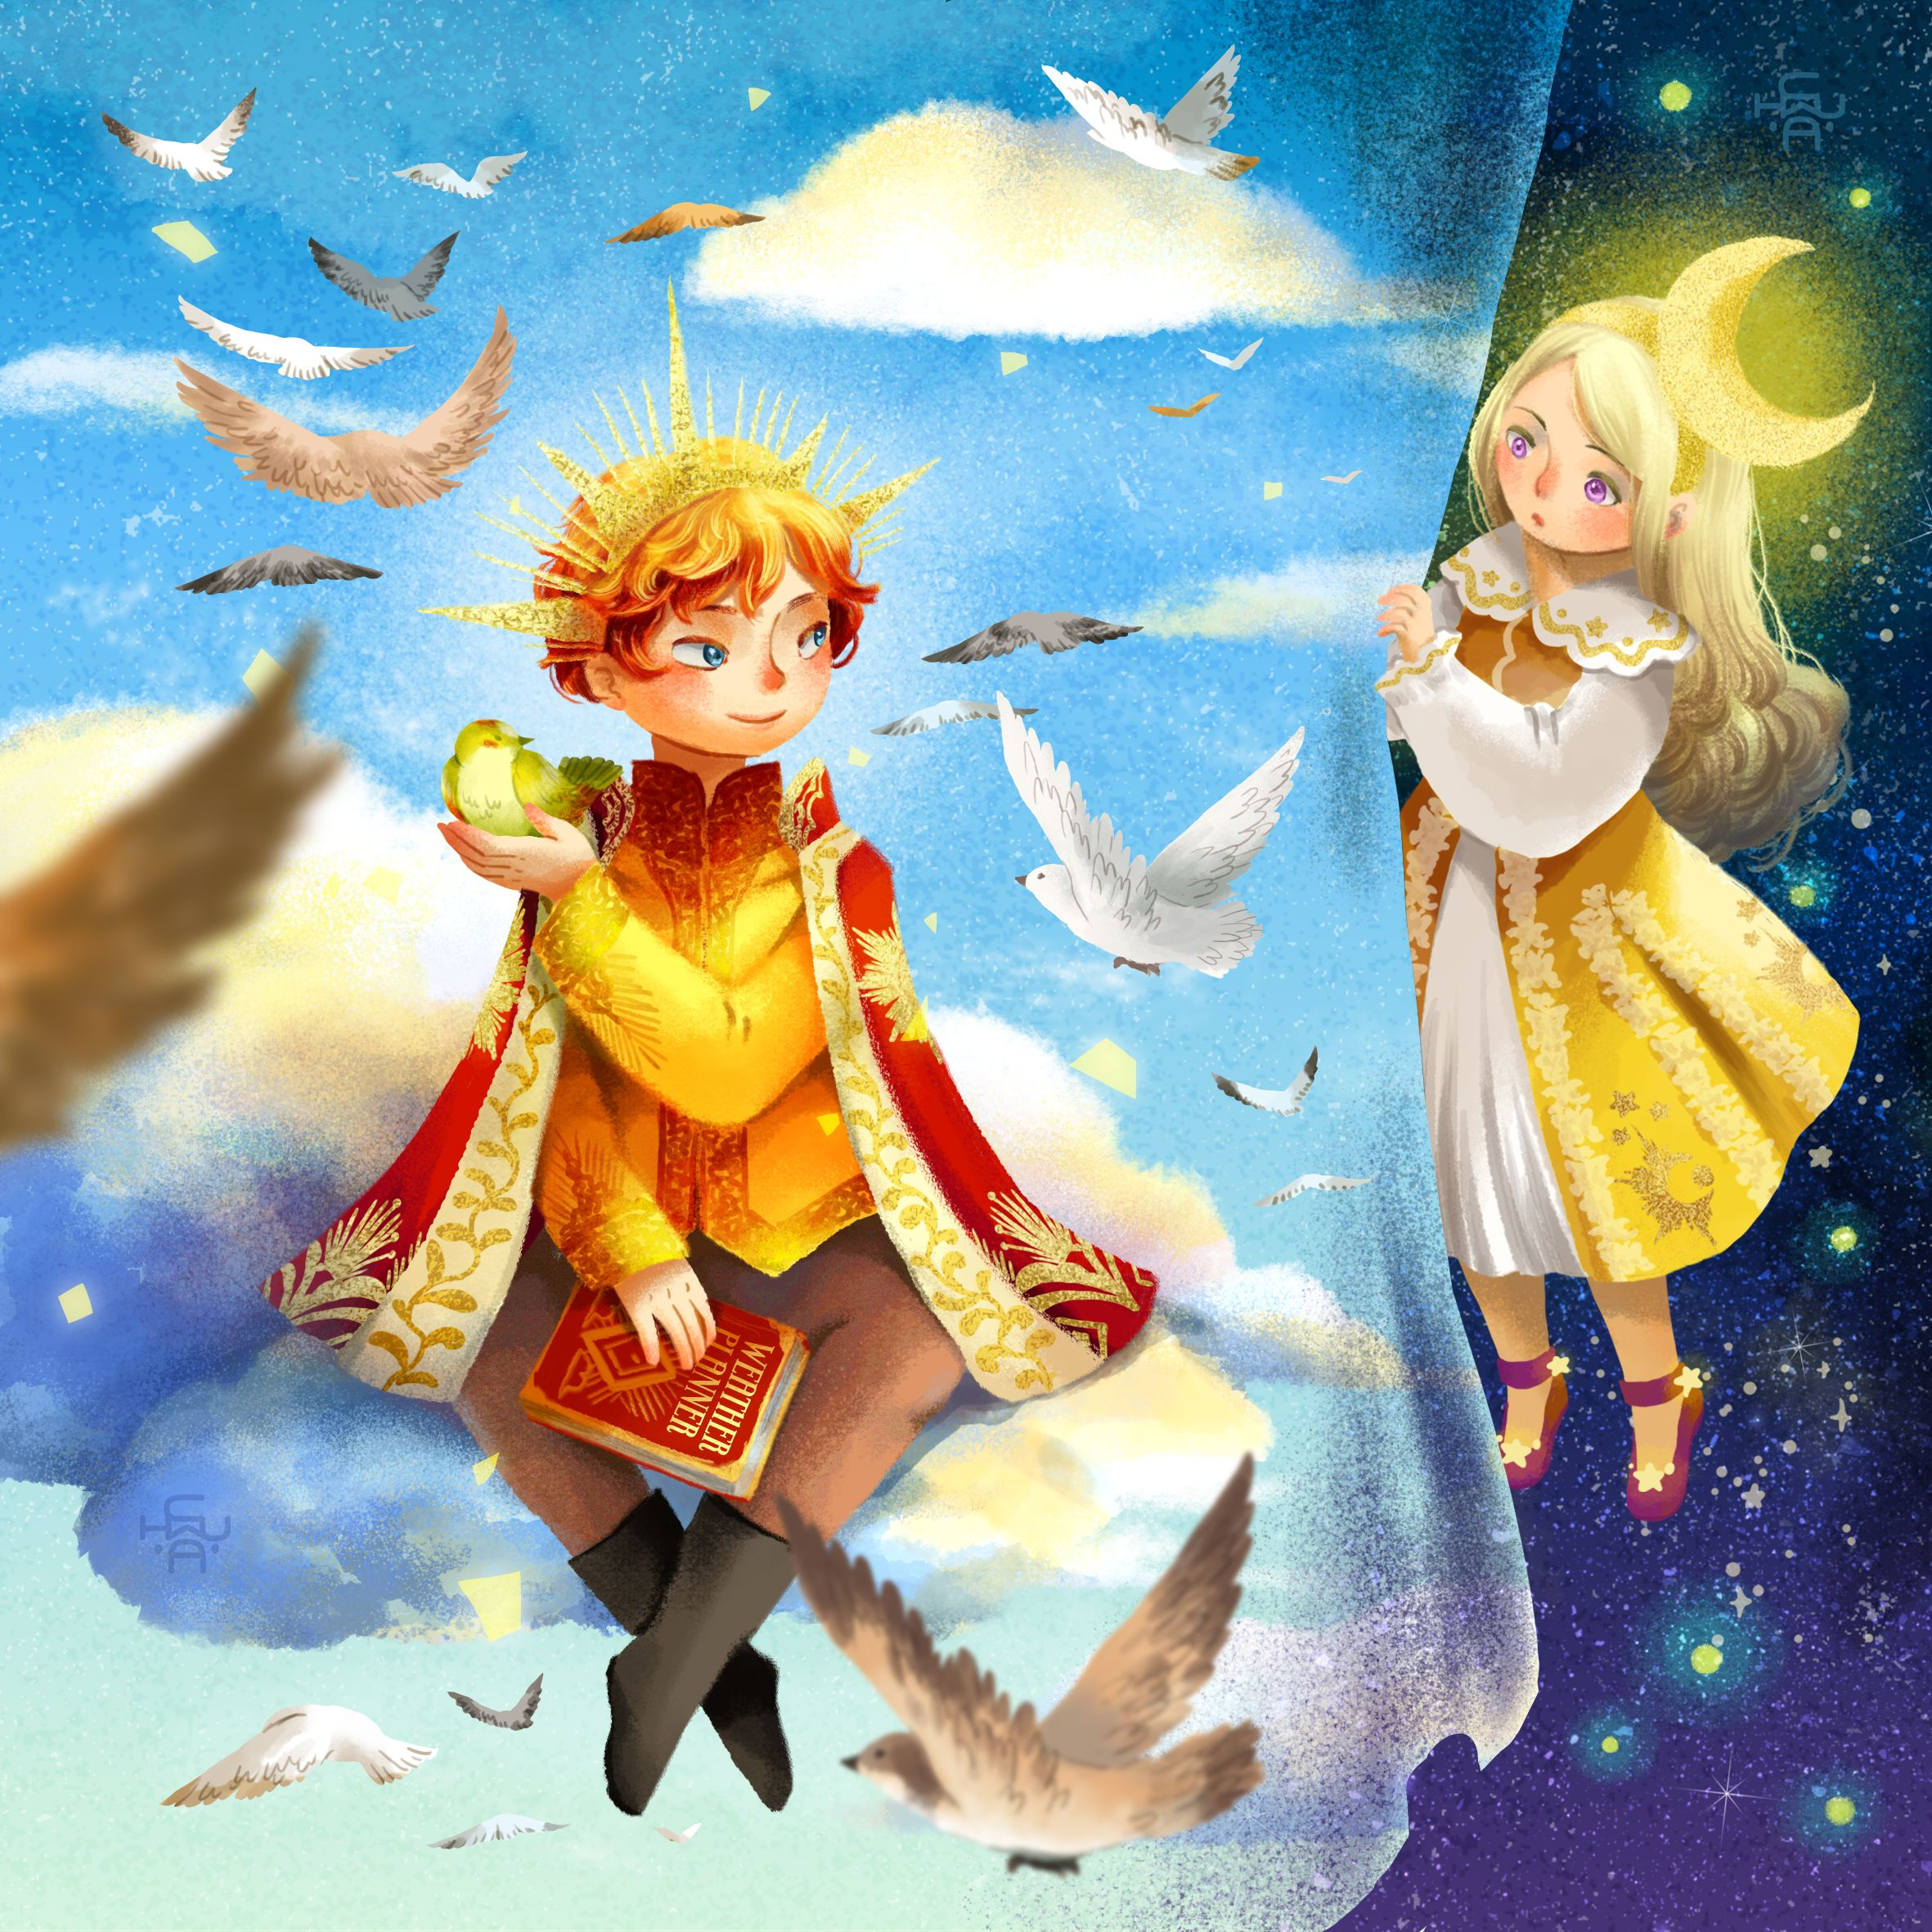 Pin By Cloud On Personification In 2020 Personification